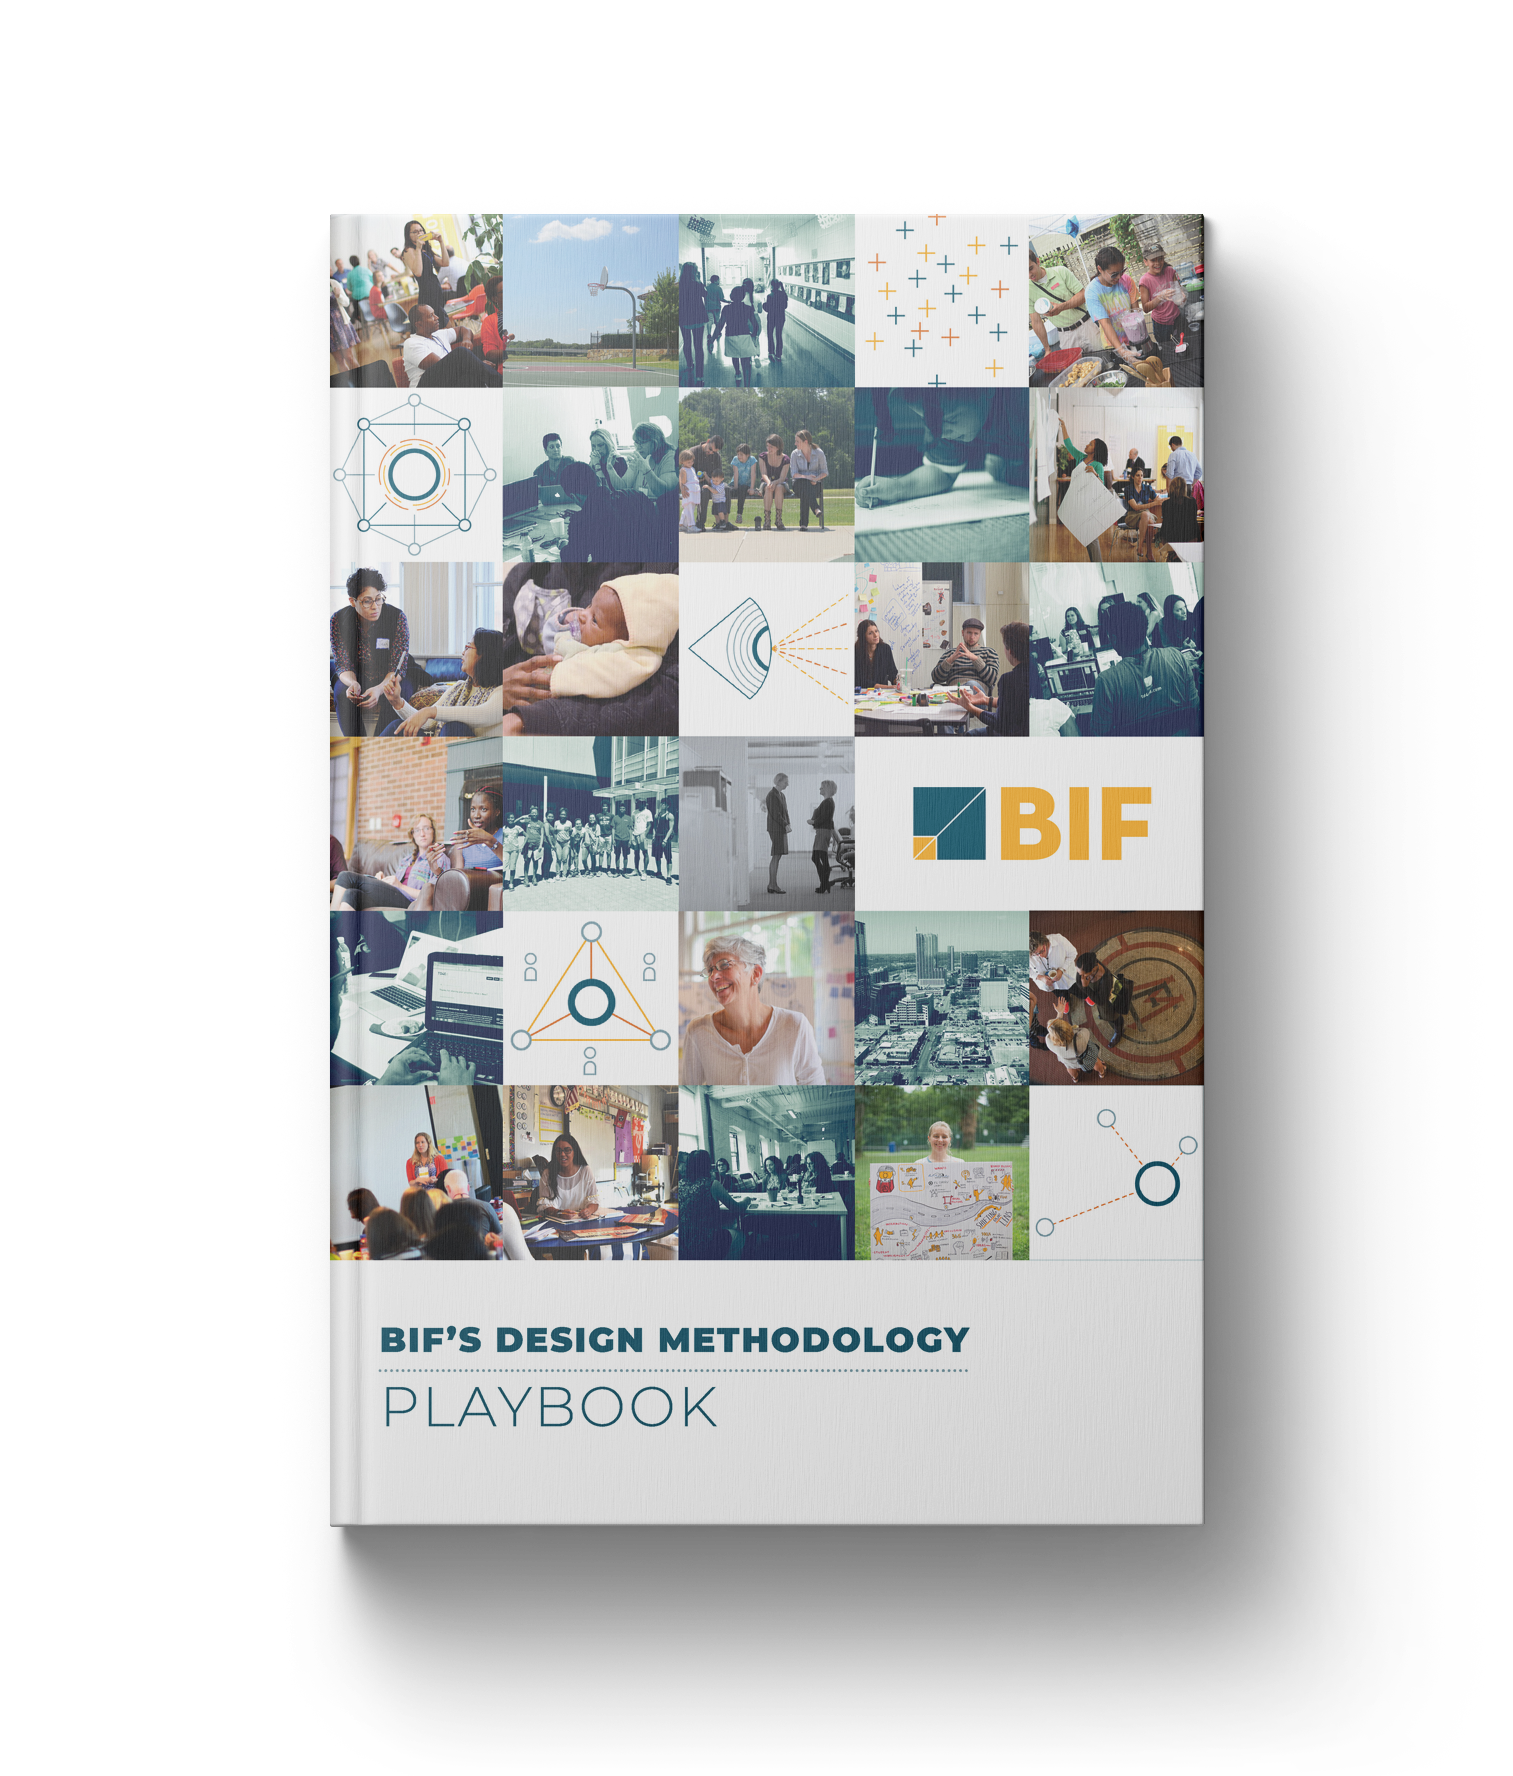 BIF's Design Methodology Playbook